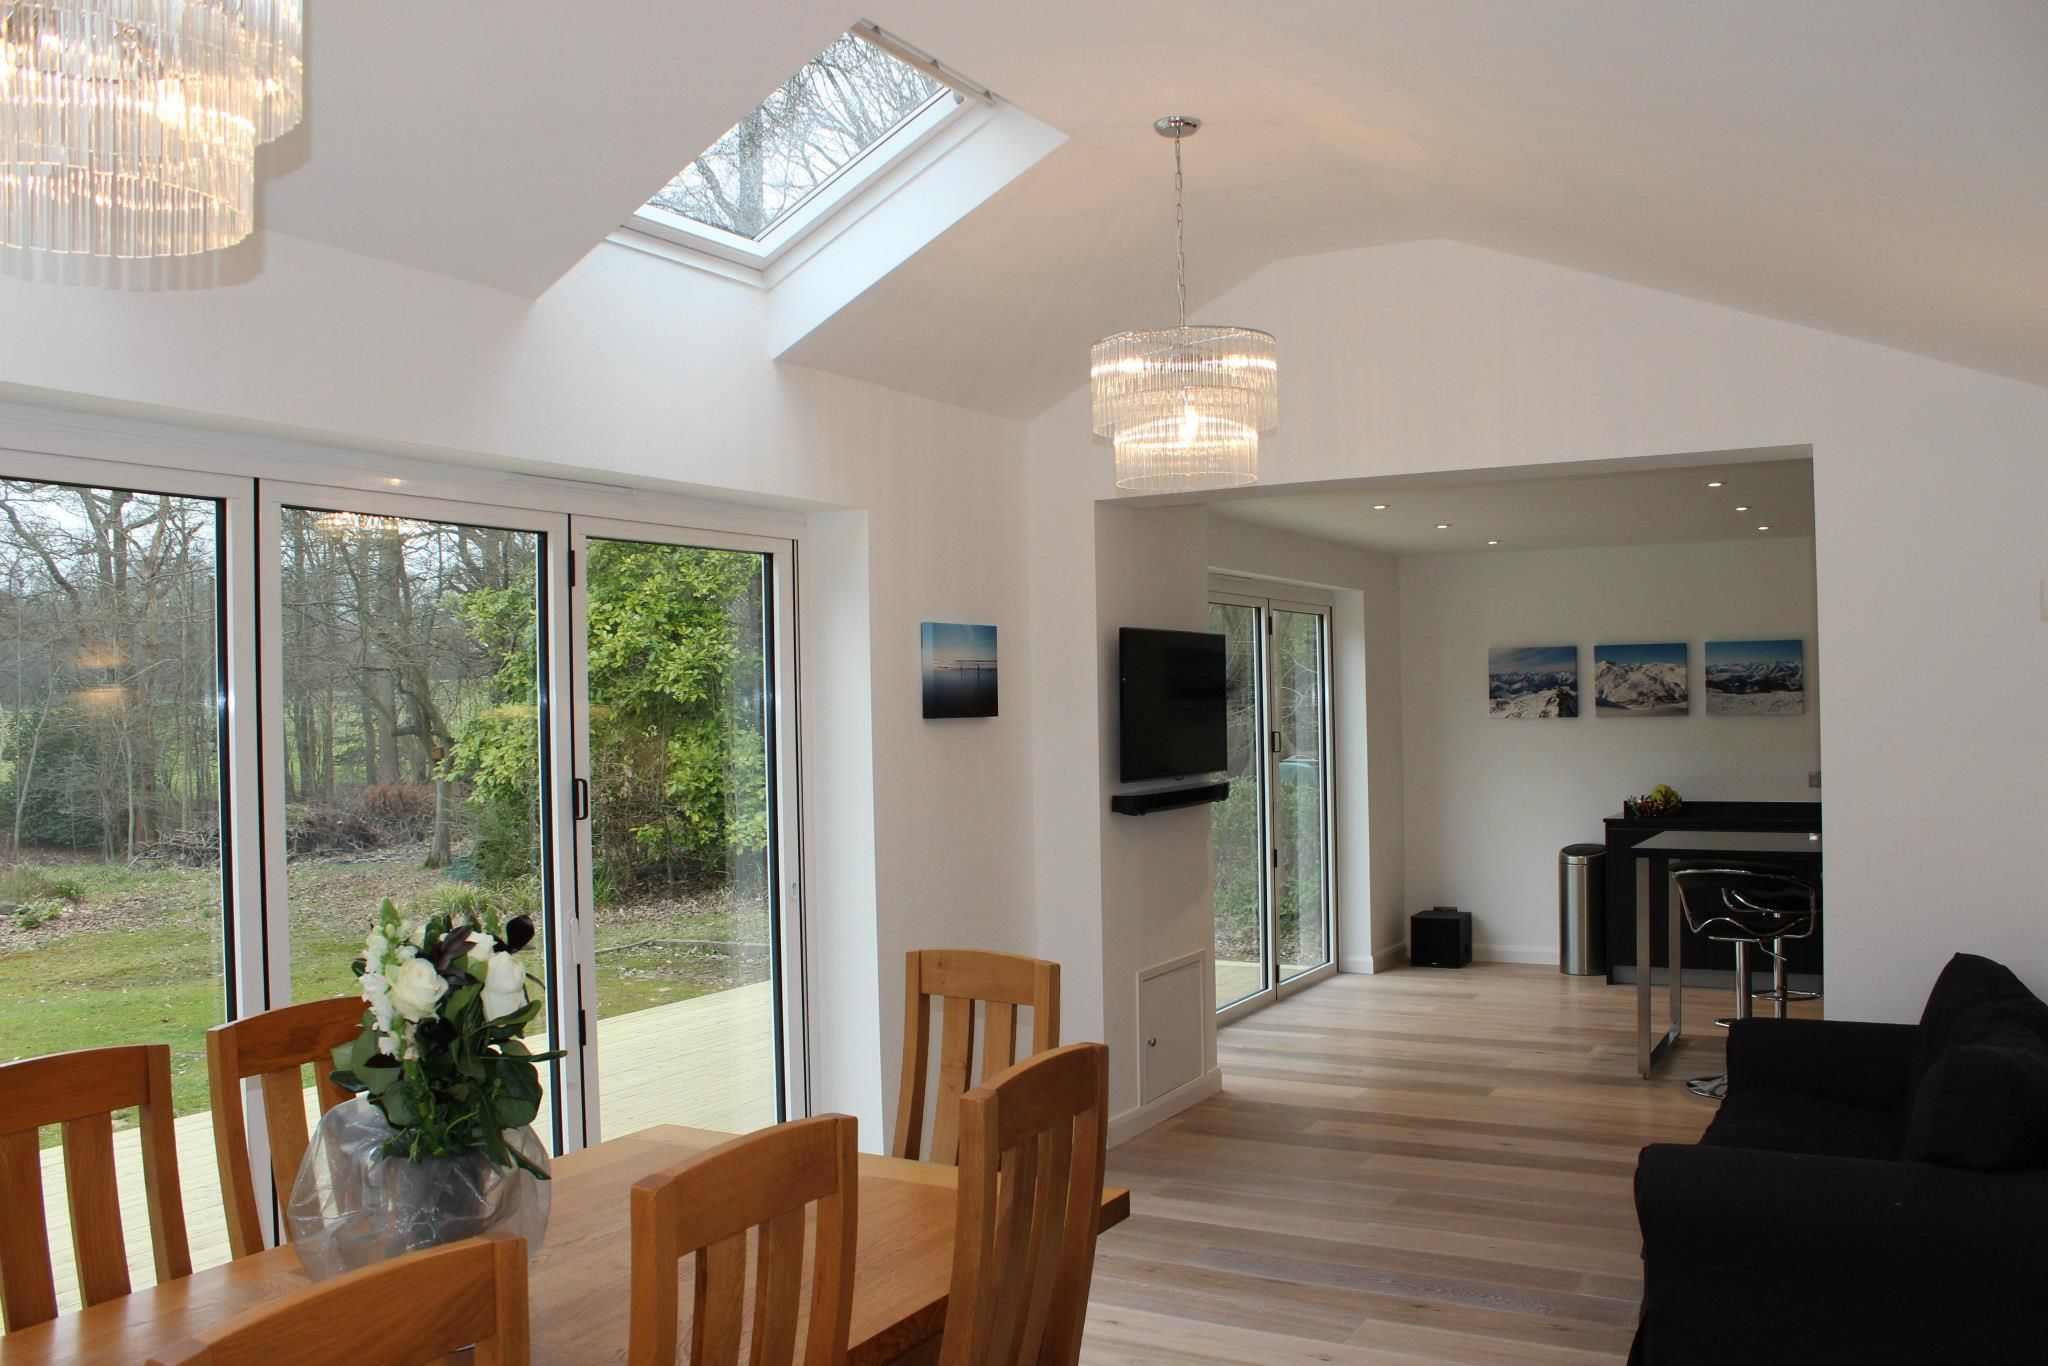 Kitchen Diner Lighting 2 X Sets Of Bi Fold Doors Onto Decked Area With Skylights And